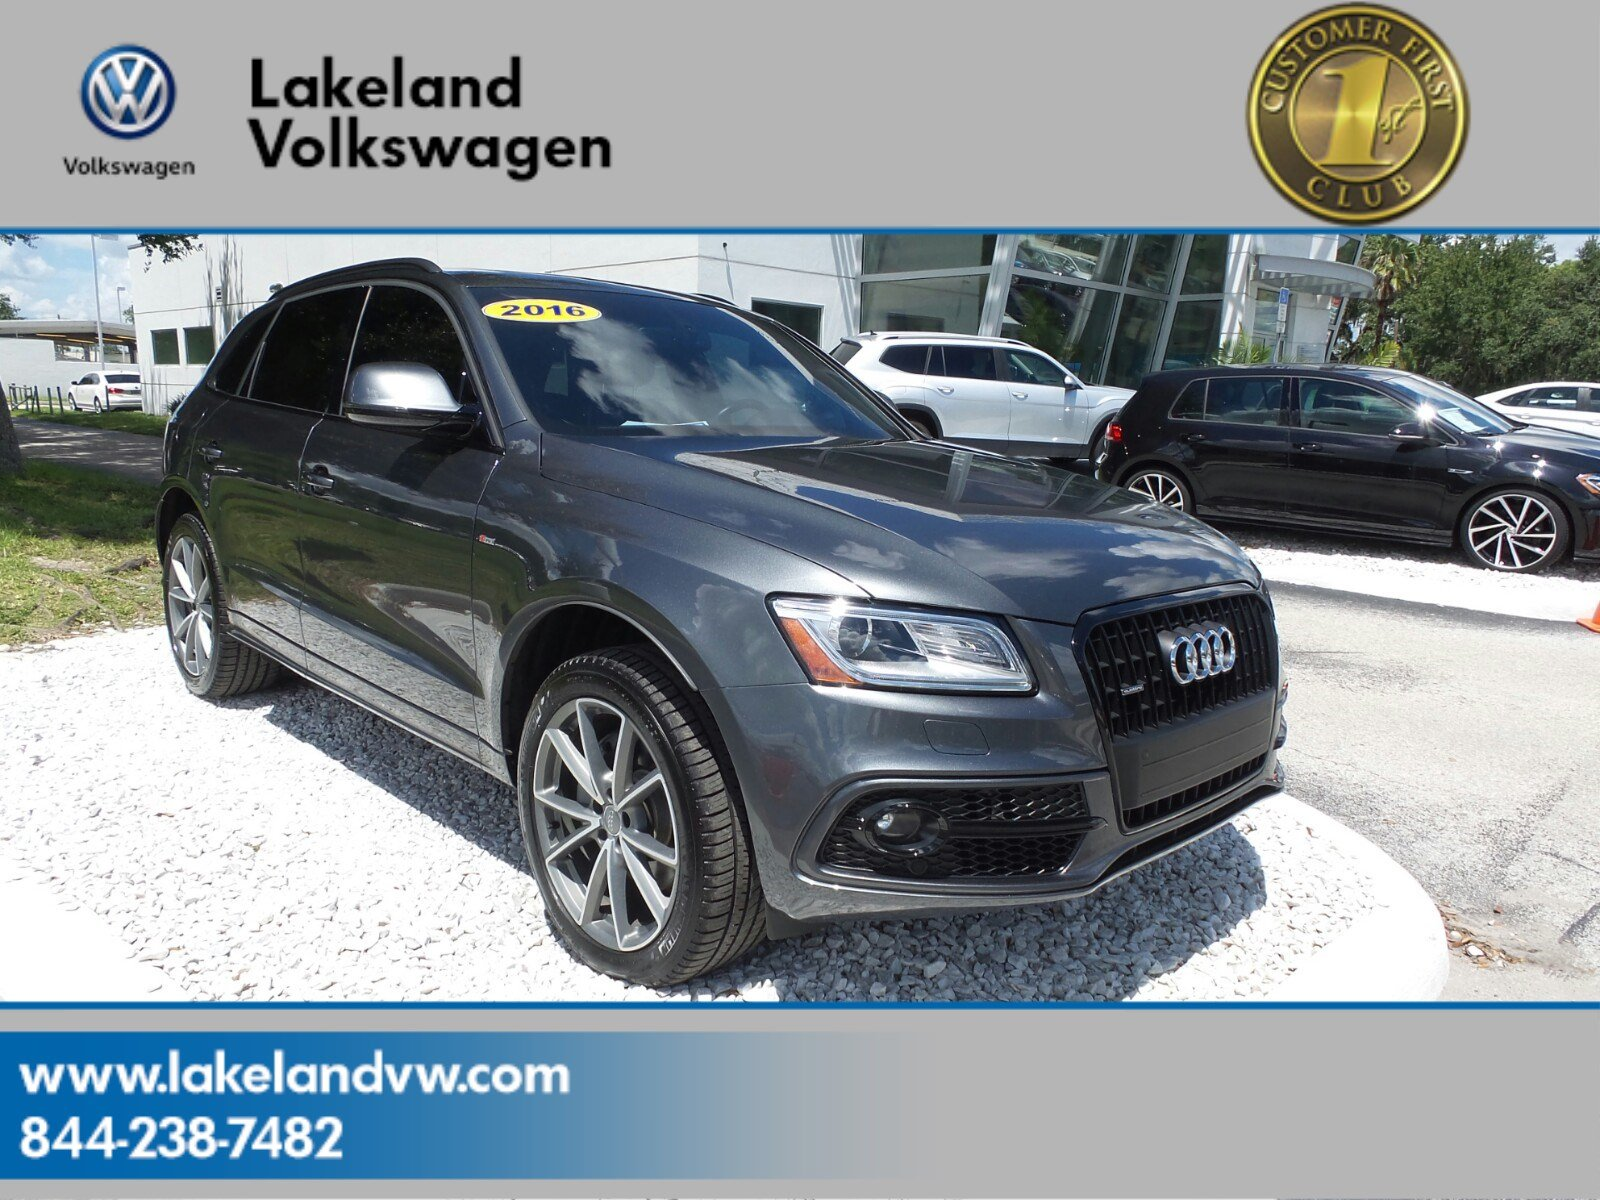 Pre Owned 2016 Audi Q5 Premium Plus Sport Utility in Lakeland